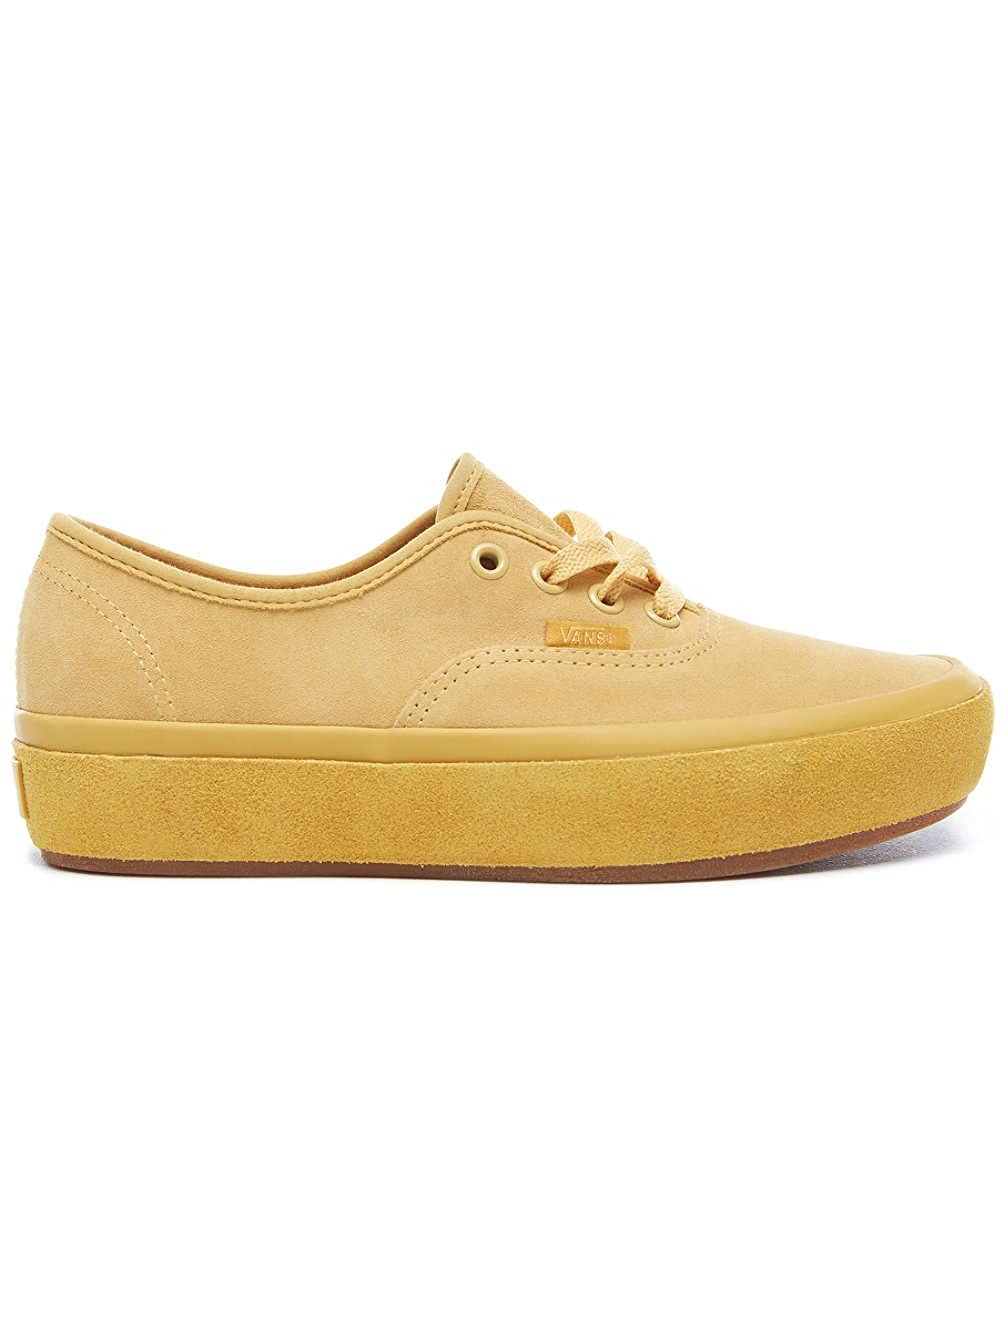 07d3d8d926bc Vans Womens Ochre Yellow Authentic Platform Trainers-UK 3  Amazon.co.uk   Shoes   Bags